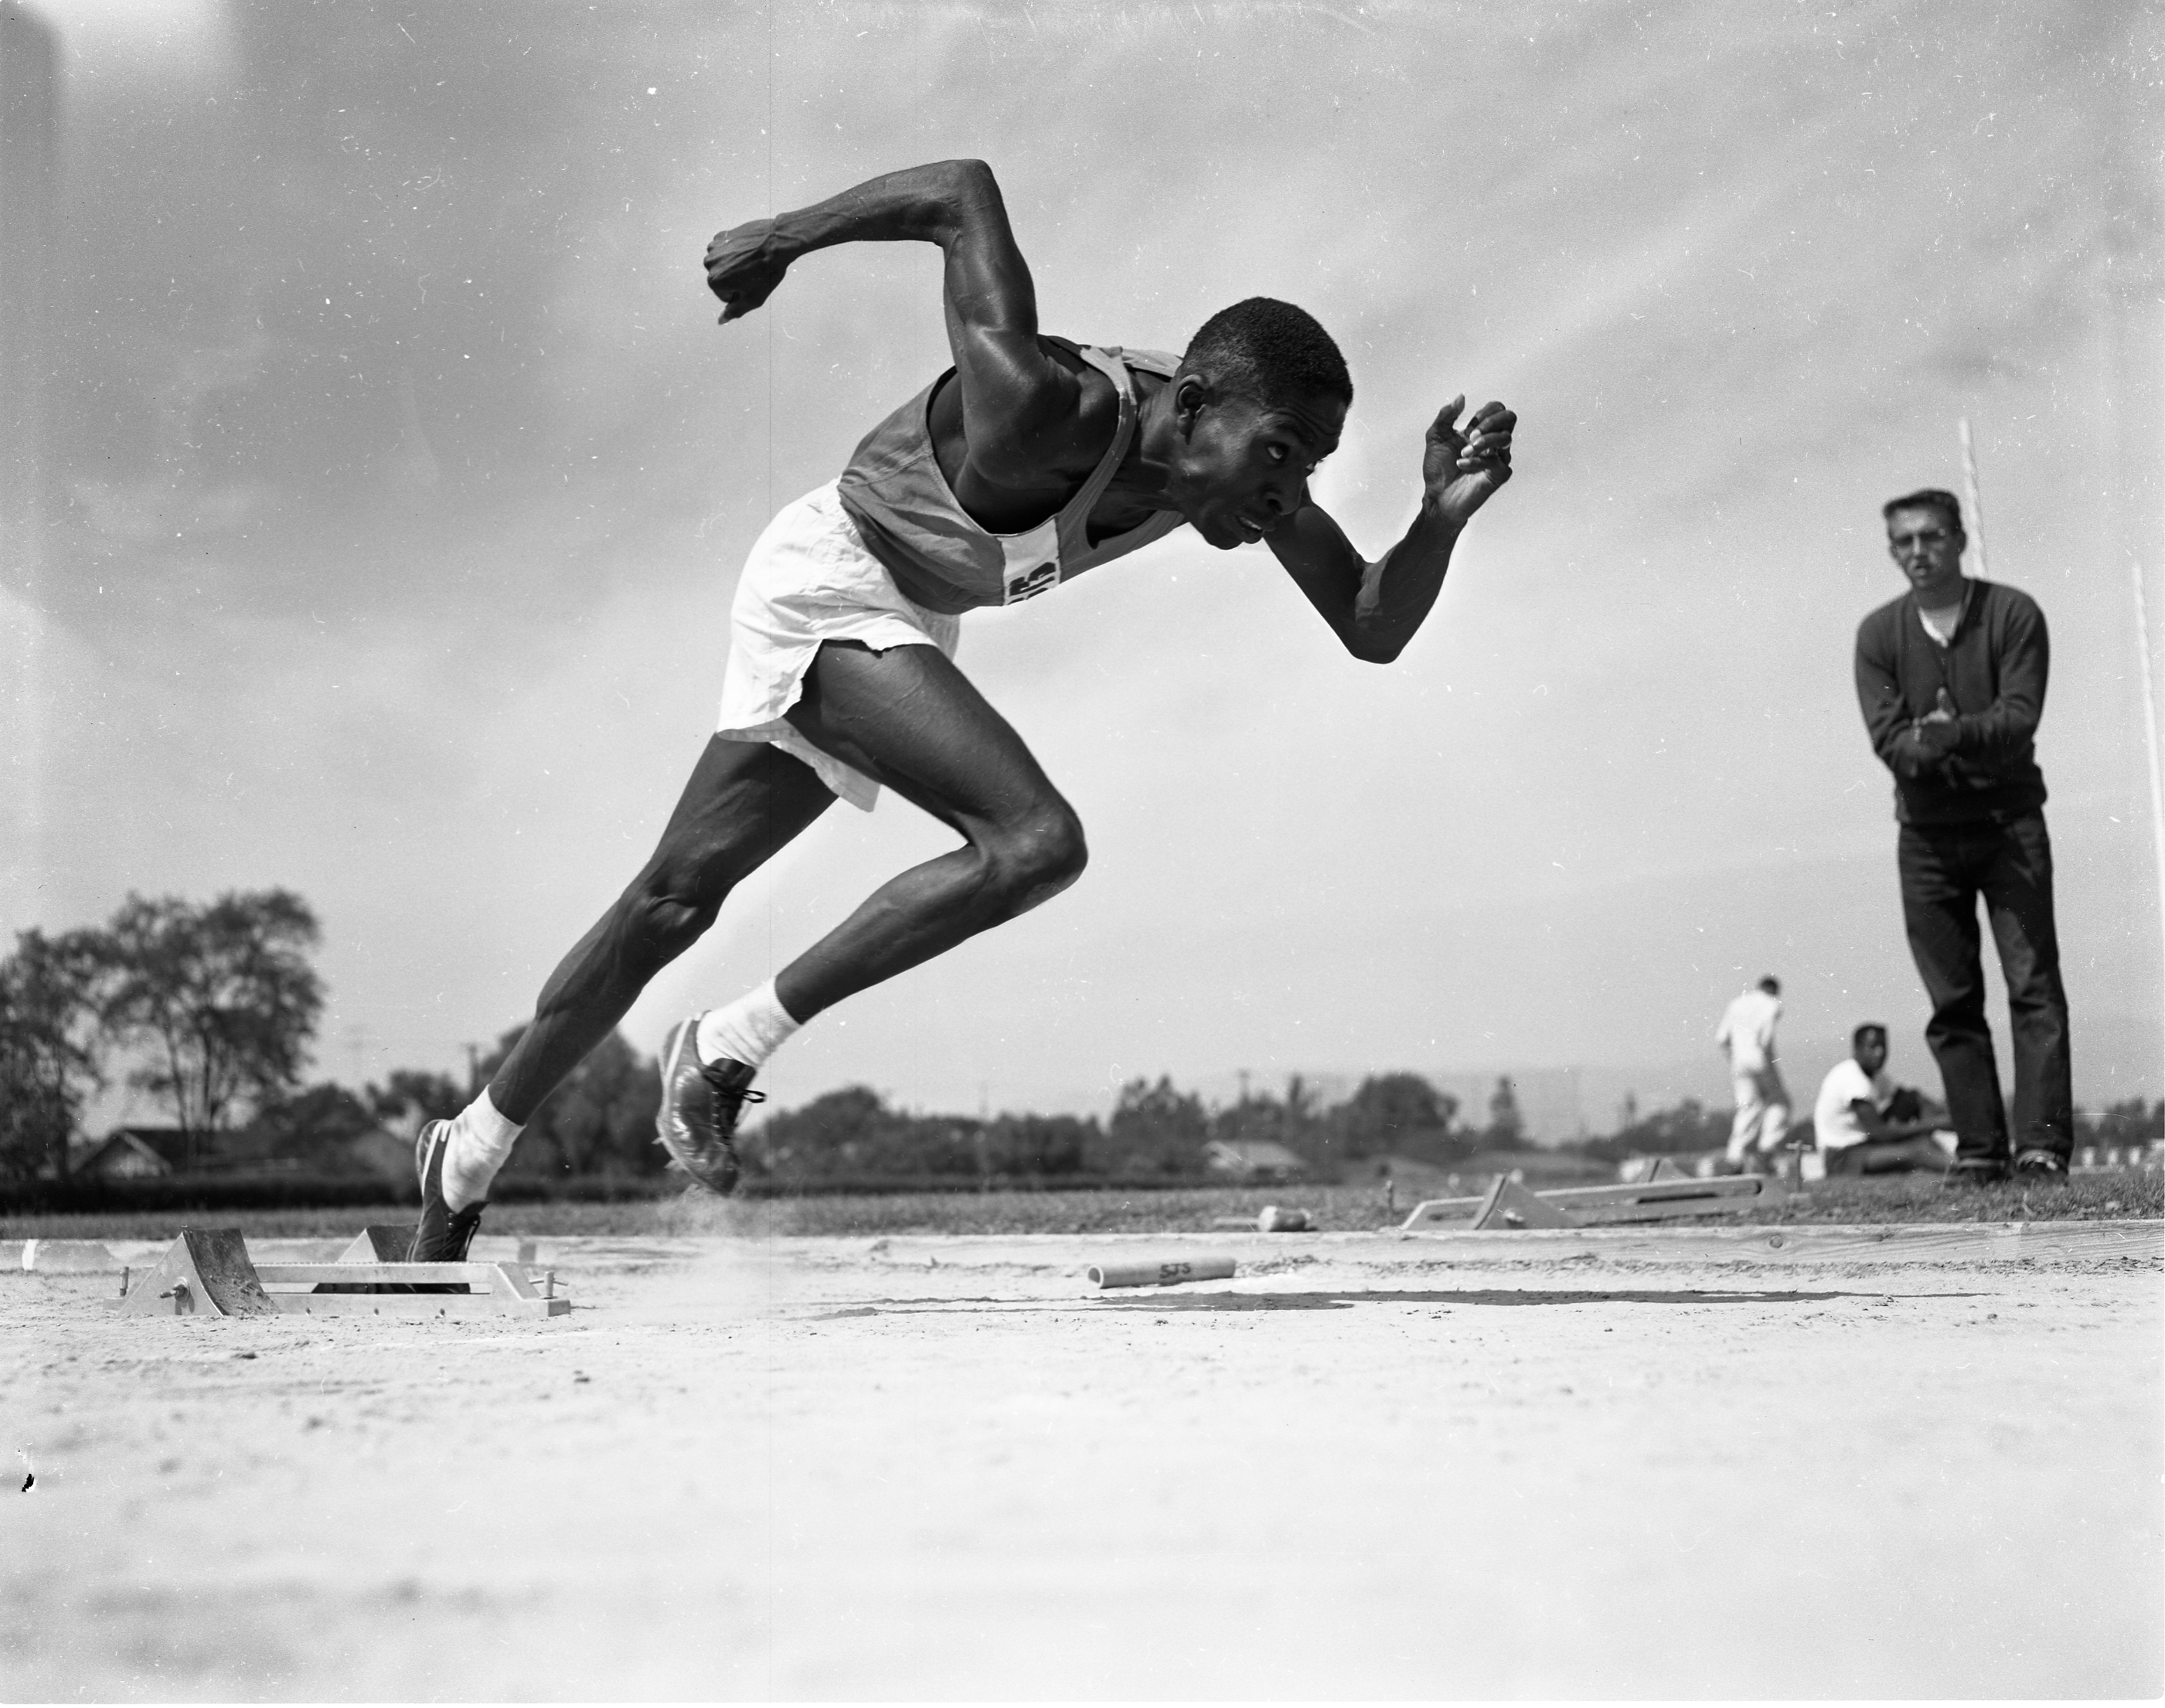 Lang Stanley, c. 1956. Stanley was a 1953 NCAA champion in the 880 yard run